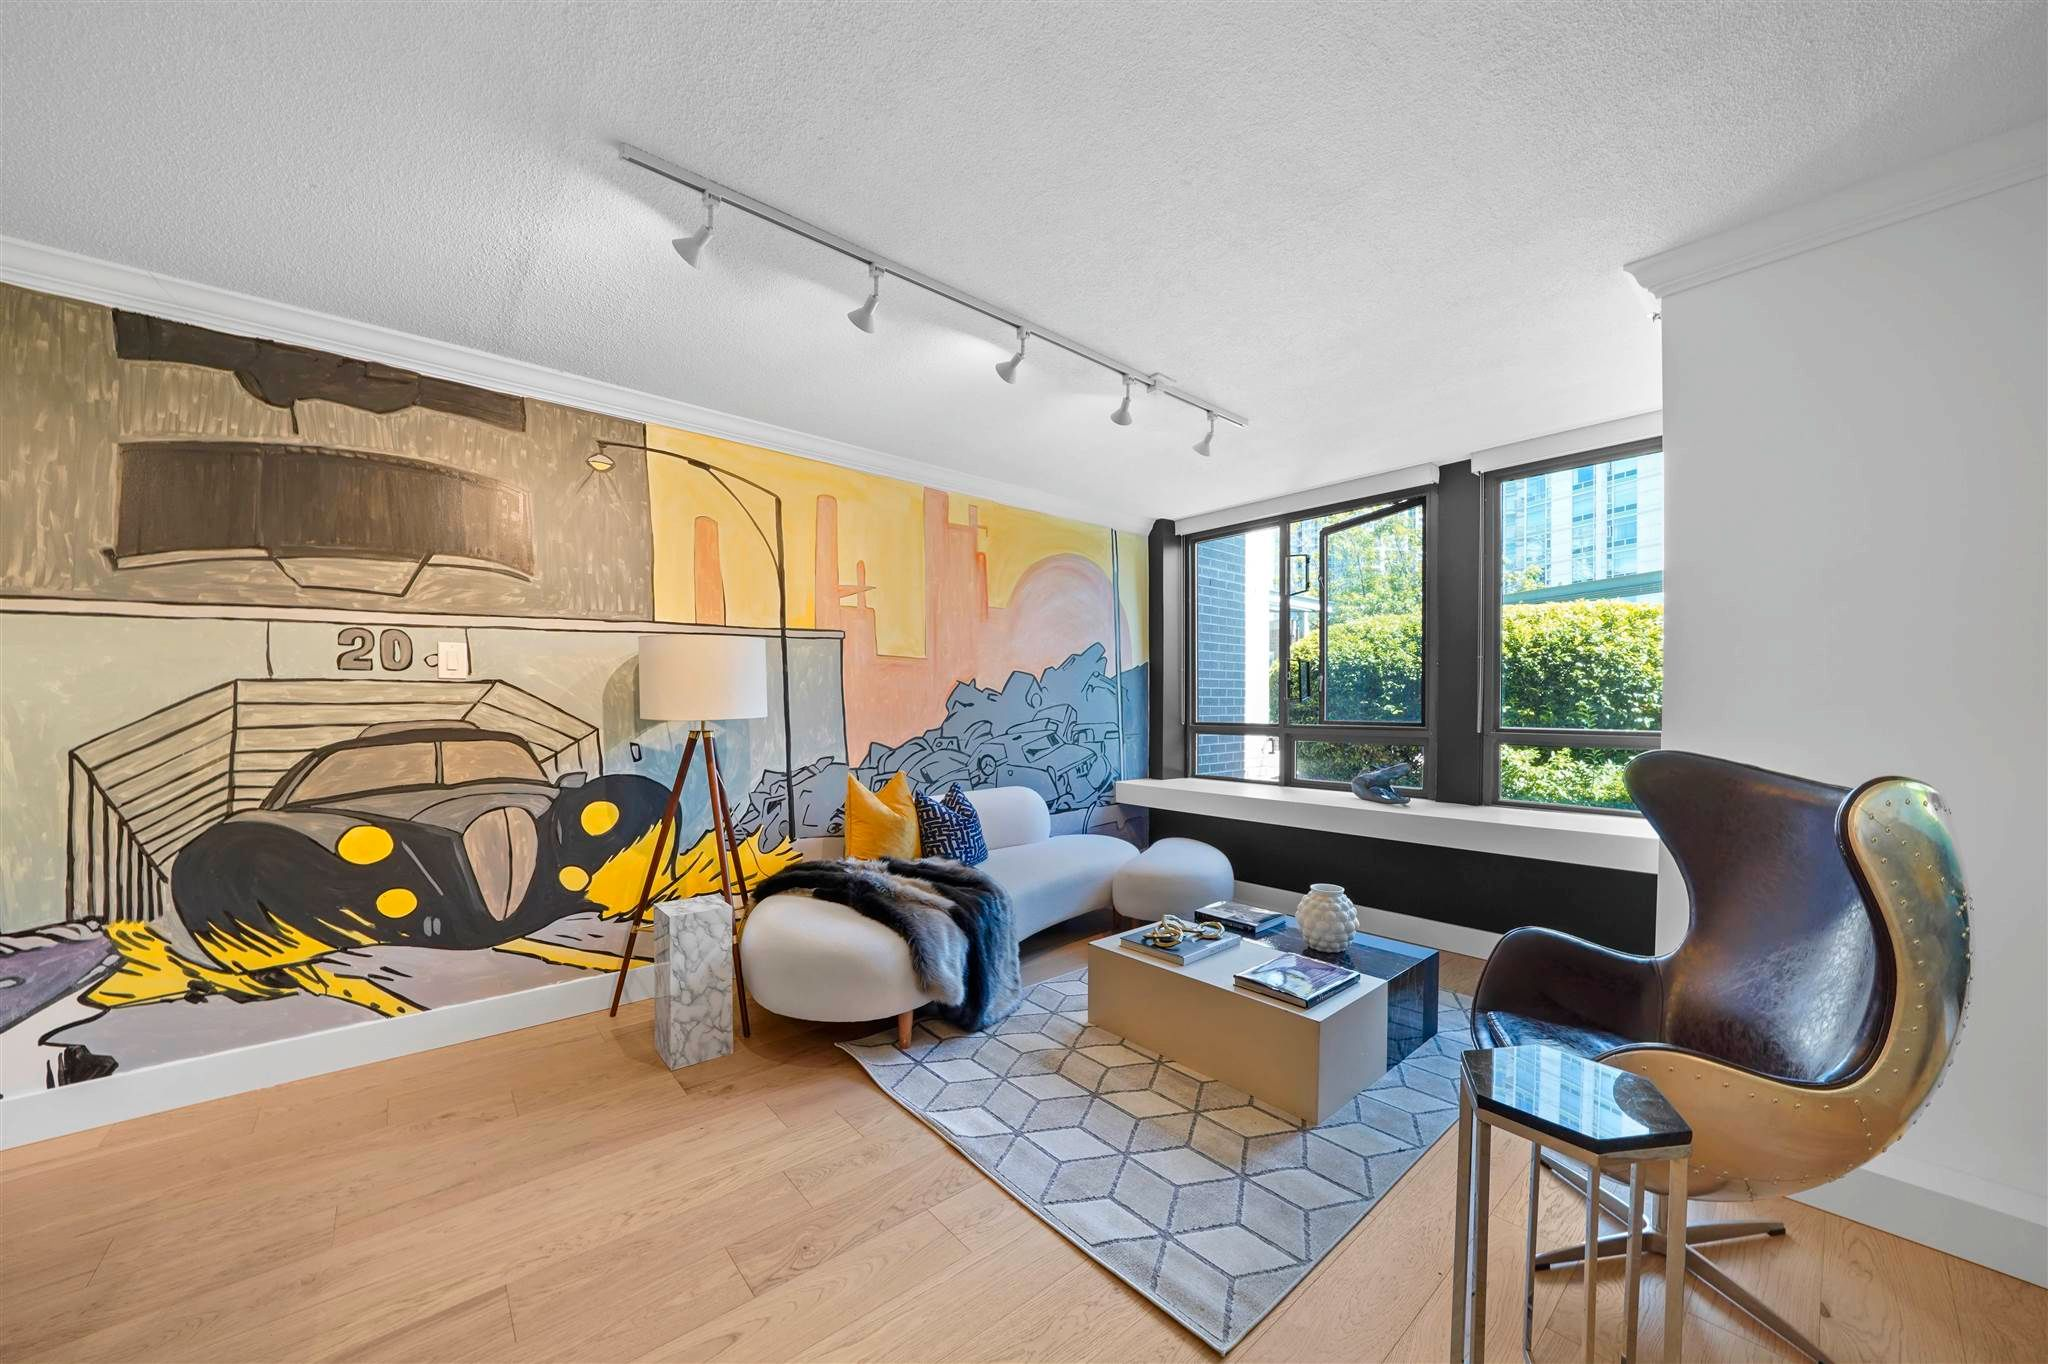 Main Photo: 203 238 ALVIN NAROD MEWS in Vancouver: Yaletown Condo for sale (Vancouver West)  : MLS®# R2604830